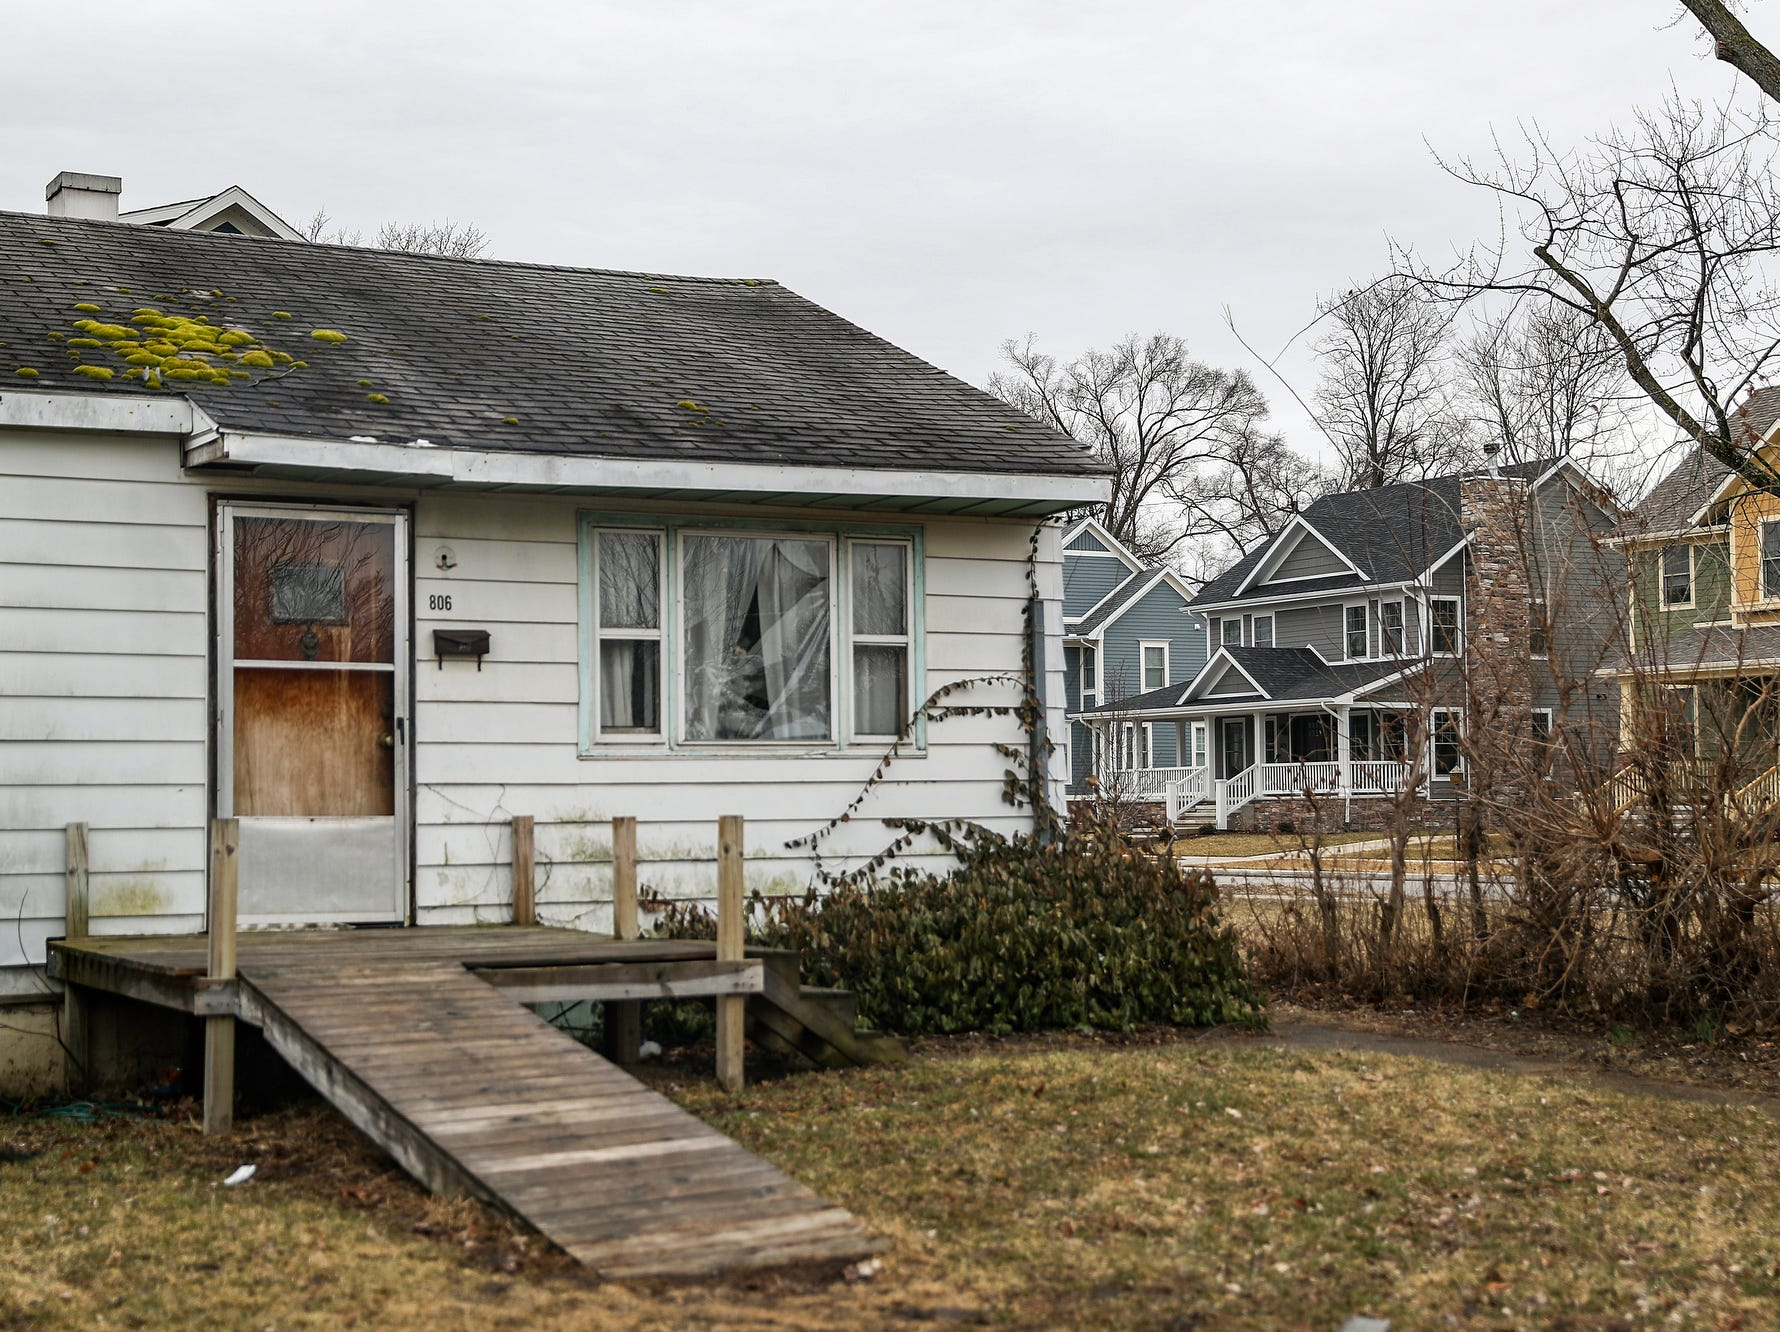 An older home sits with newer homes behind it, in the Harters Heights neighborhood near Notre Dame campus in South Bend, Ind. on Wednesday, March 13, 2019. Mayor Pete Buttigieg says $852 million in private investment has been spent on city-incentivized deals since he's been in office. New houses and commercial development are quickly on the rise near the university.